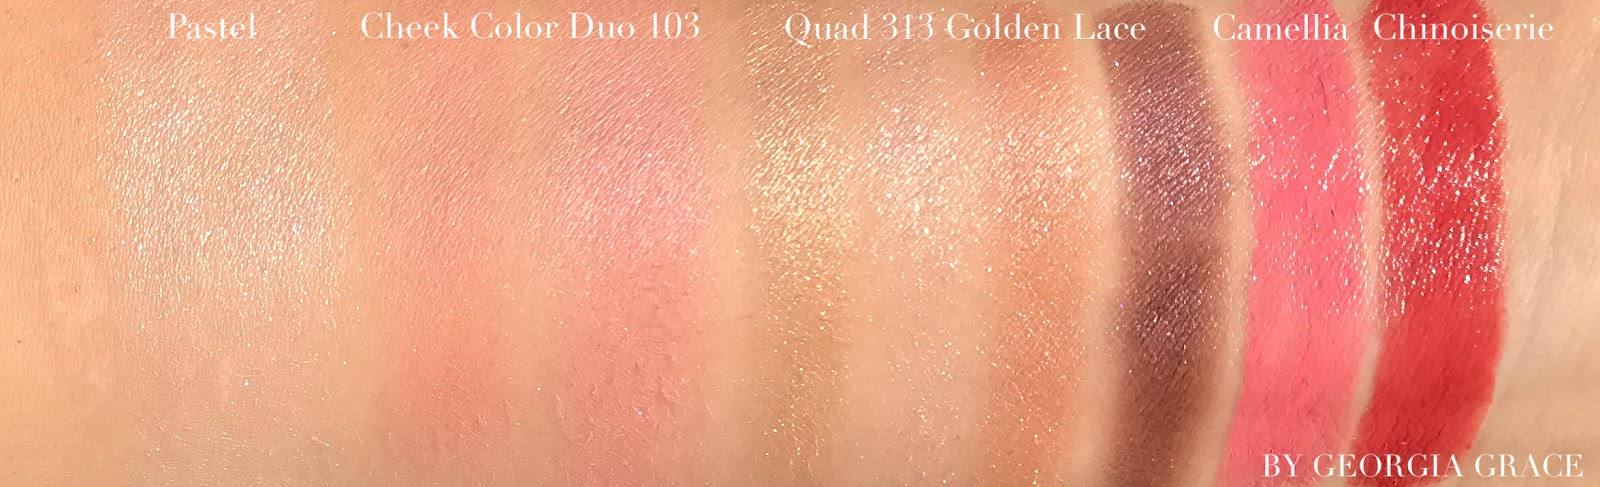 cle de peau luminizing face enhancer pastel concealer golden lace cheek duo 103 intensifying eyeliner swatches photos review